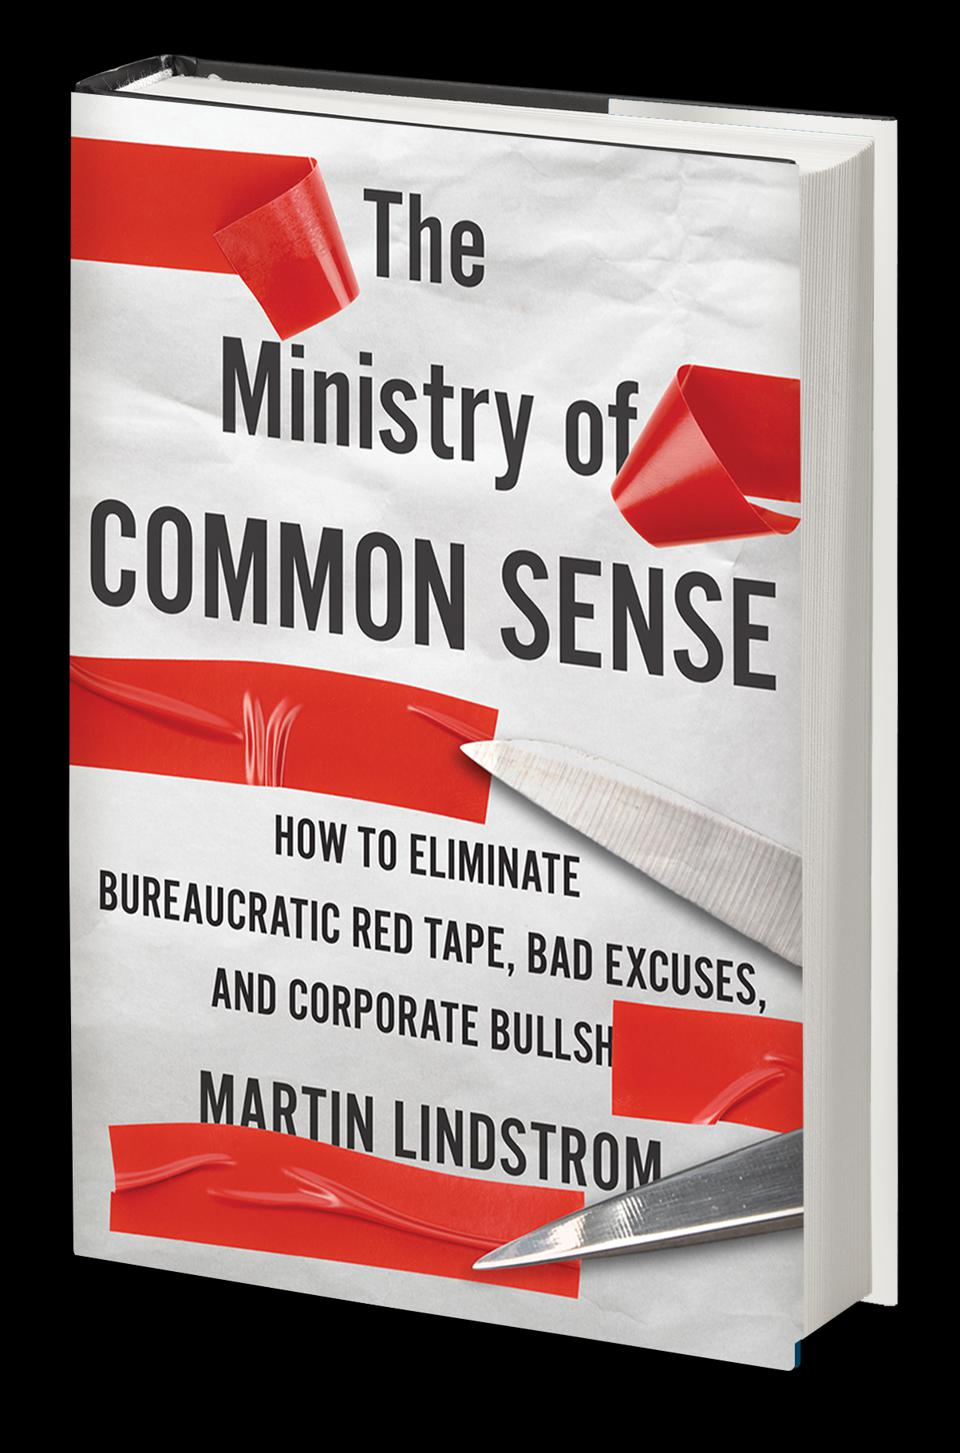 Martin Lindstrom is pushing organizations to reimagine how they do business, eliminate bureaucracy, and increase common sense at the individual and organizational levels.